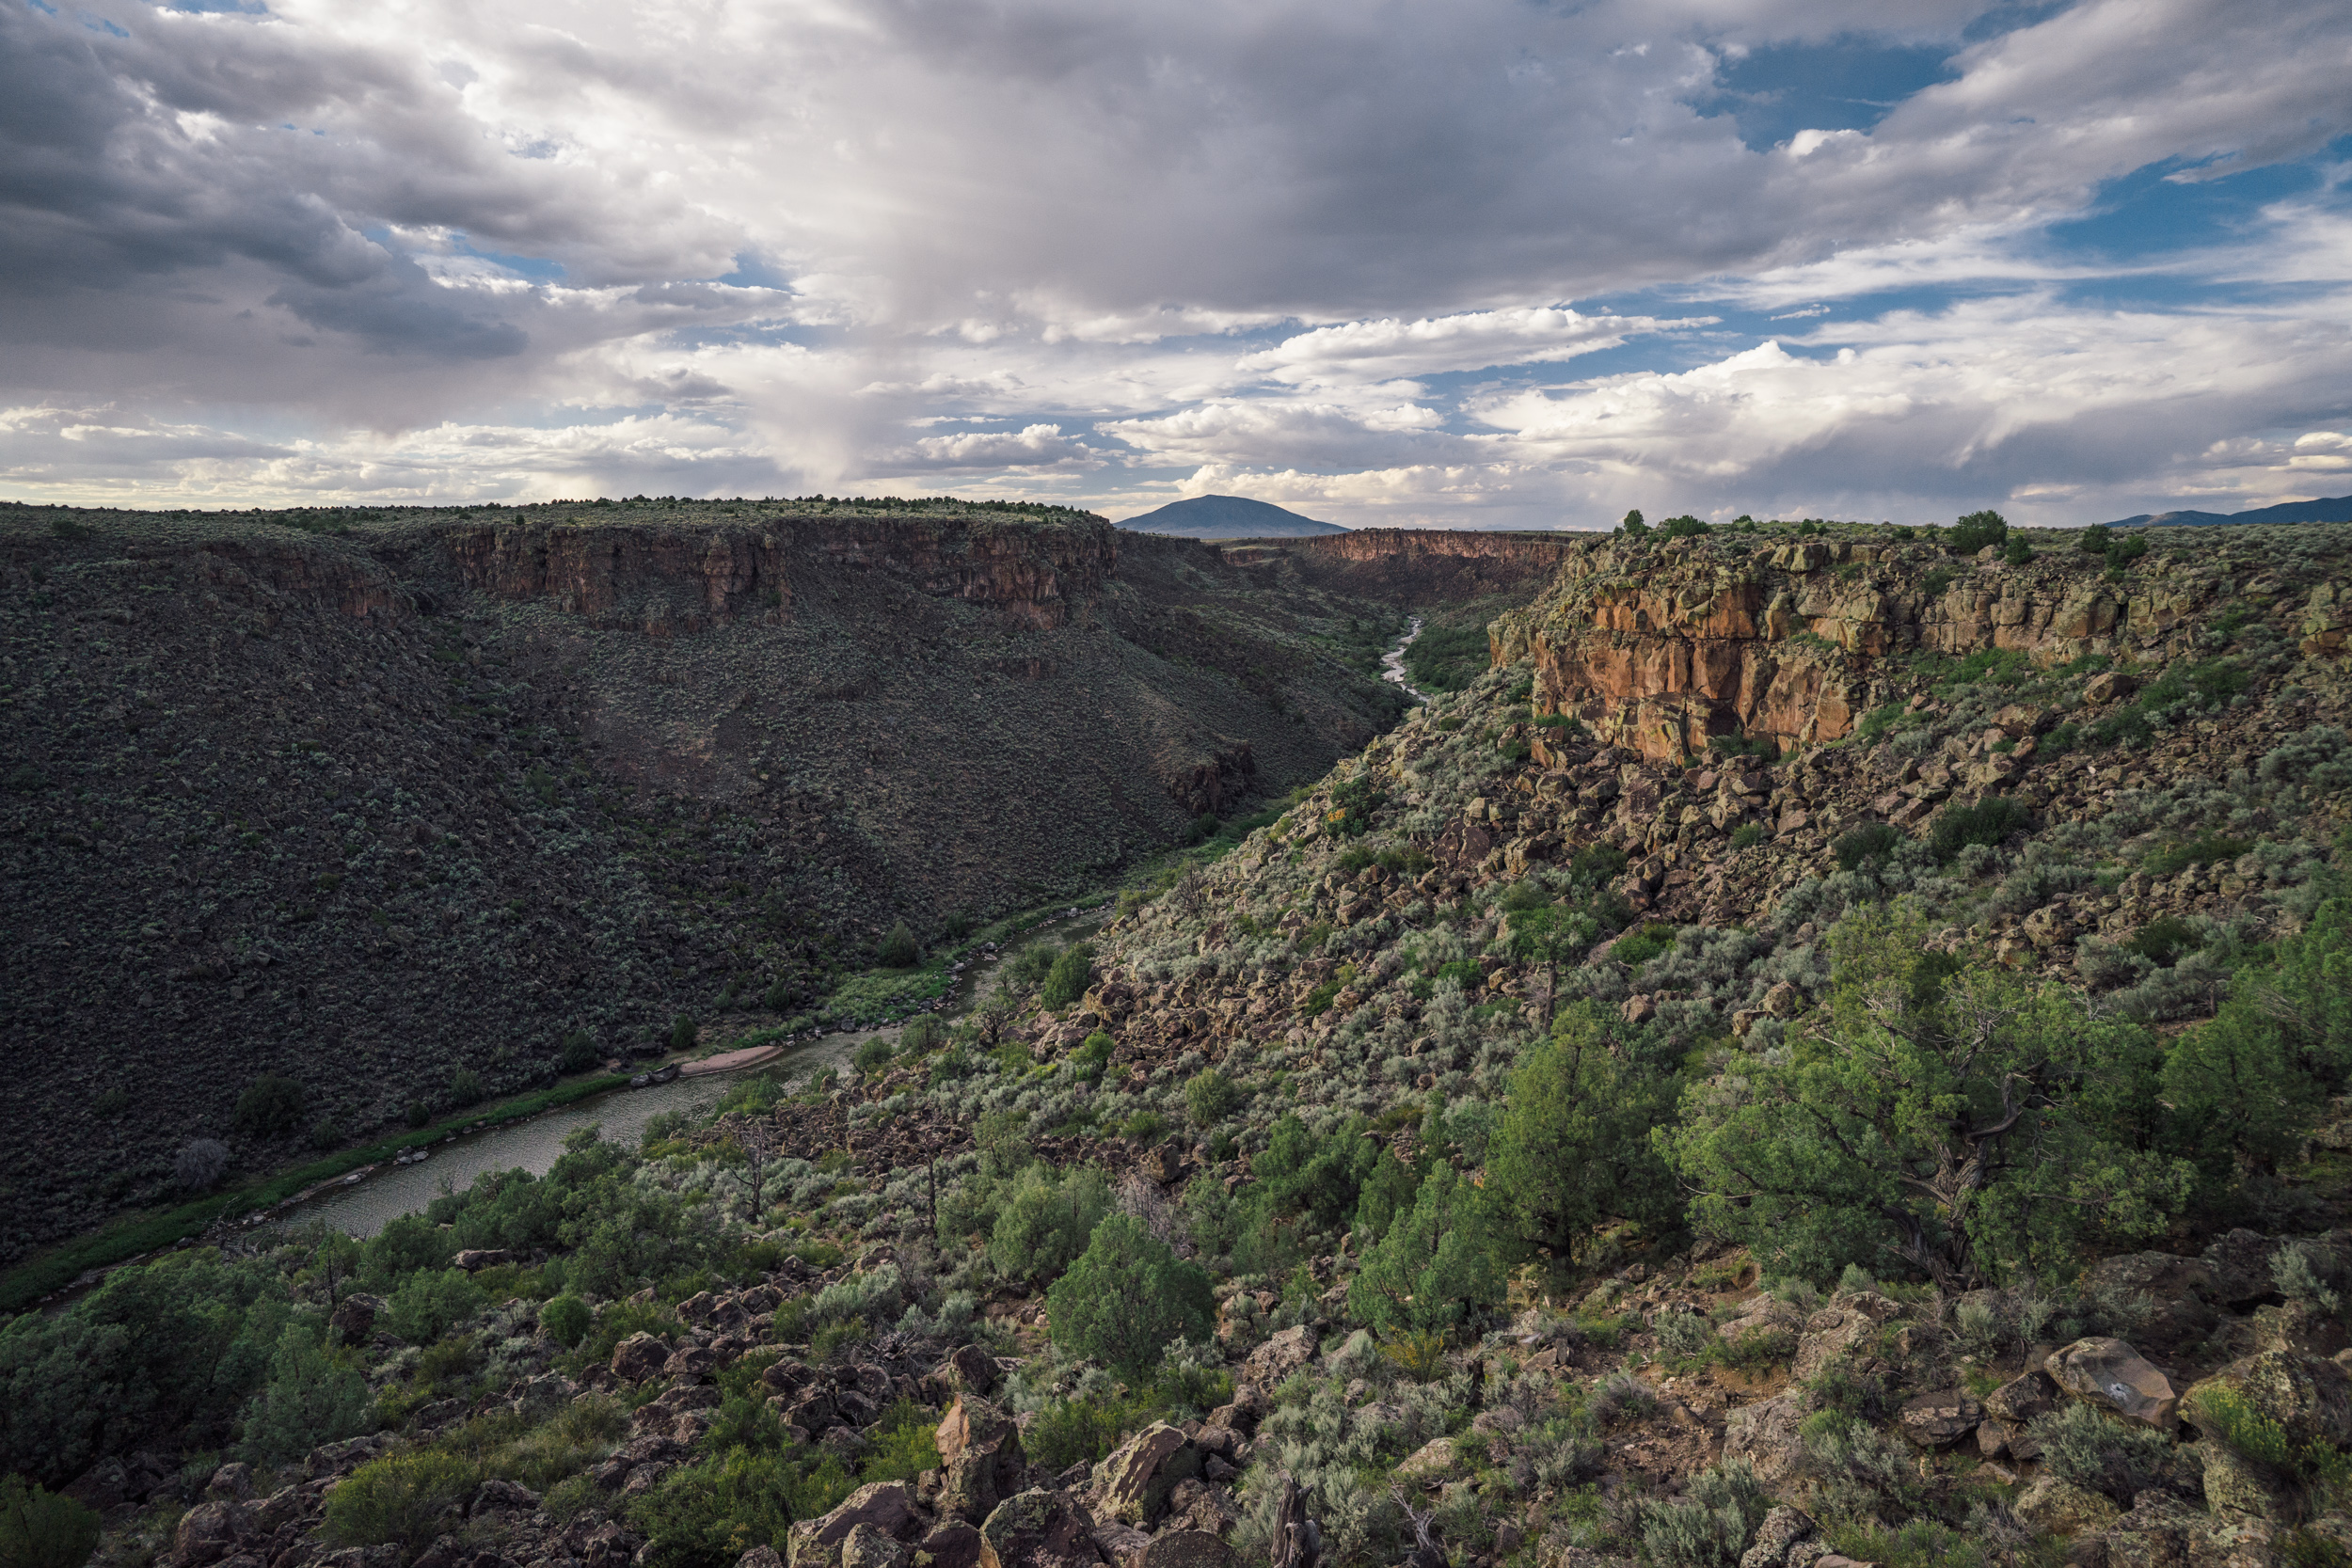 Rio Grande winding its way through its namesake Rio Grande del Norte National Monument in New Mexico  (photo by Andreea Lotak)